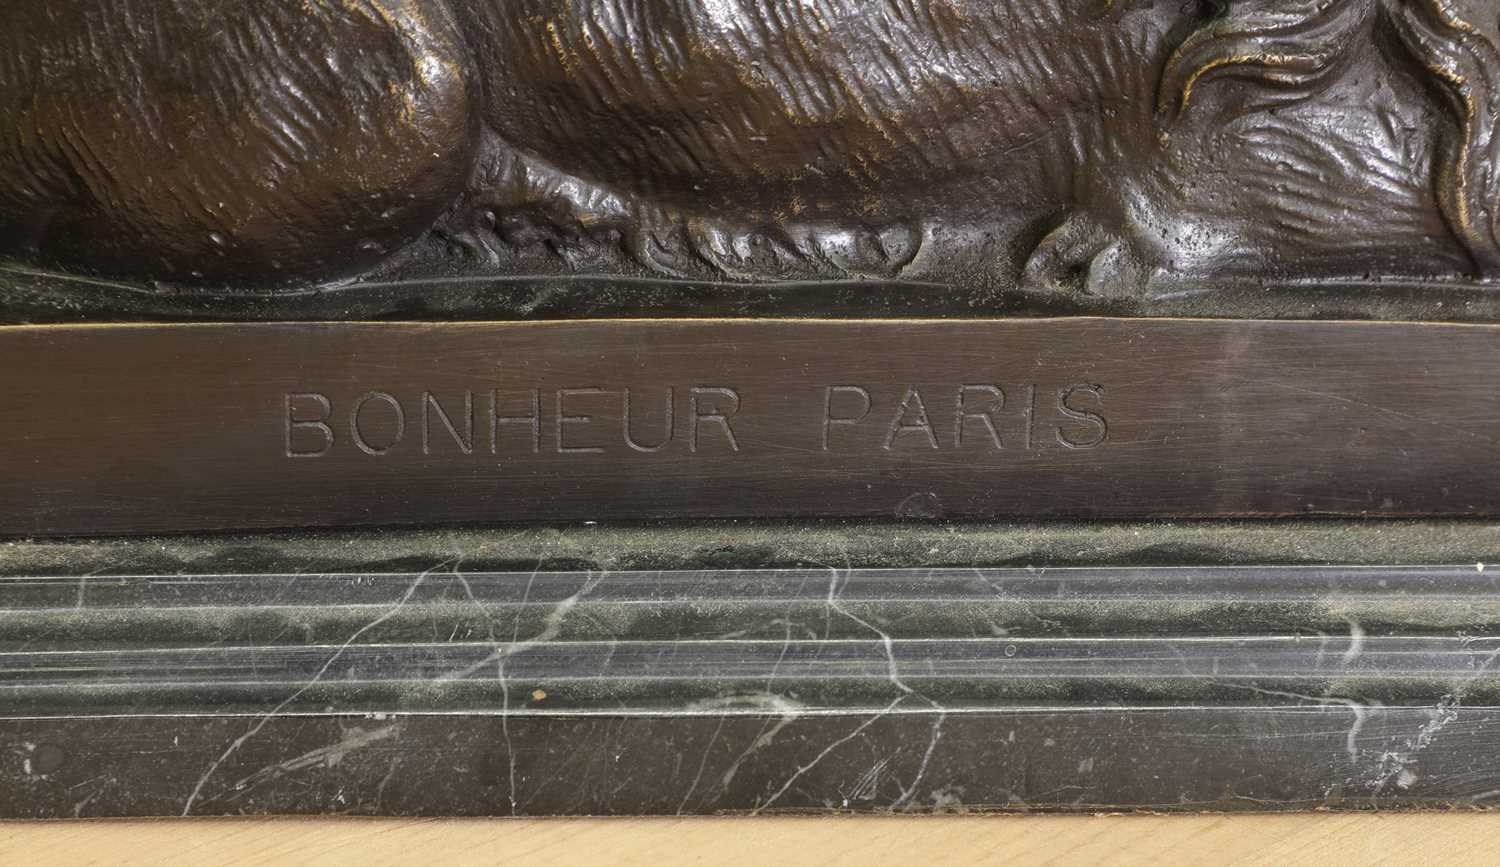 After Isidore Bonheur, - Image 4 of 4